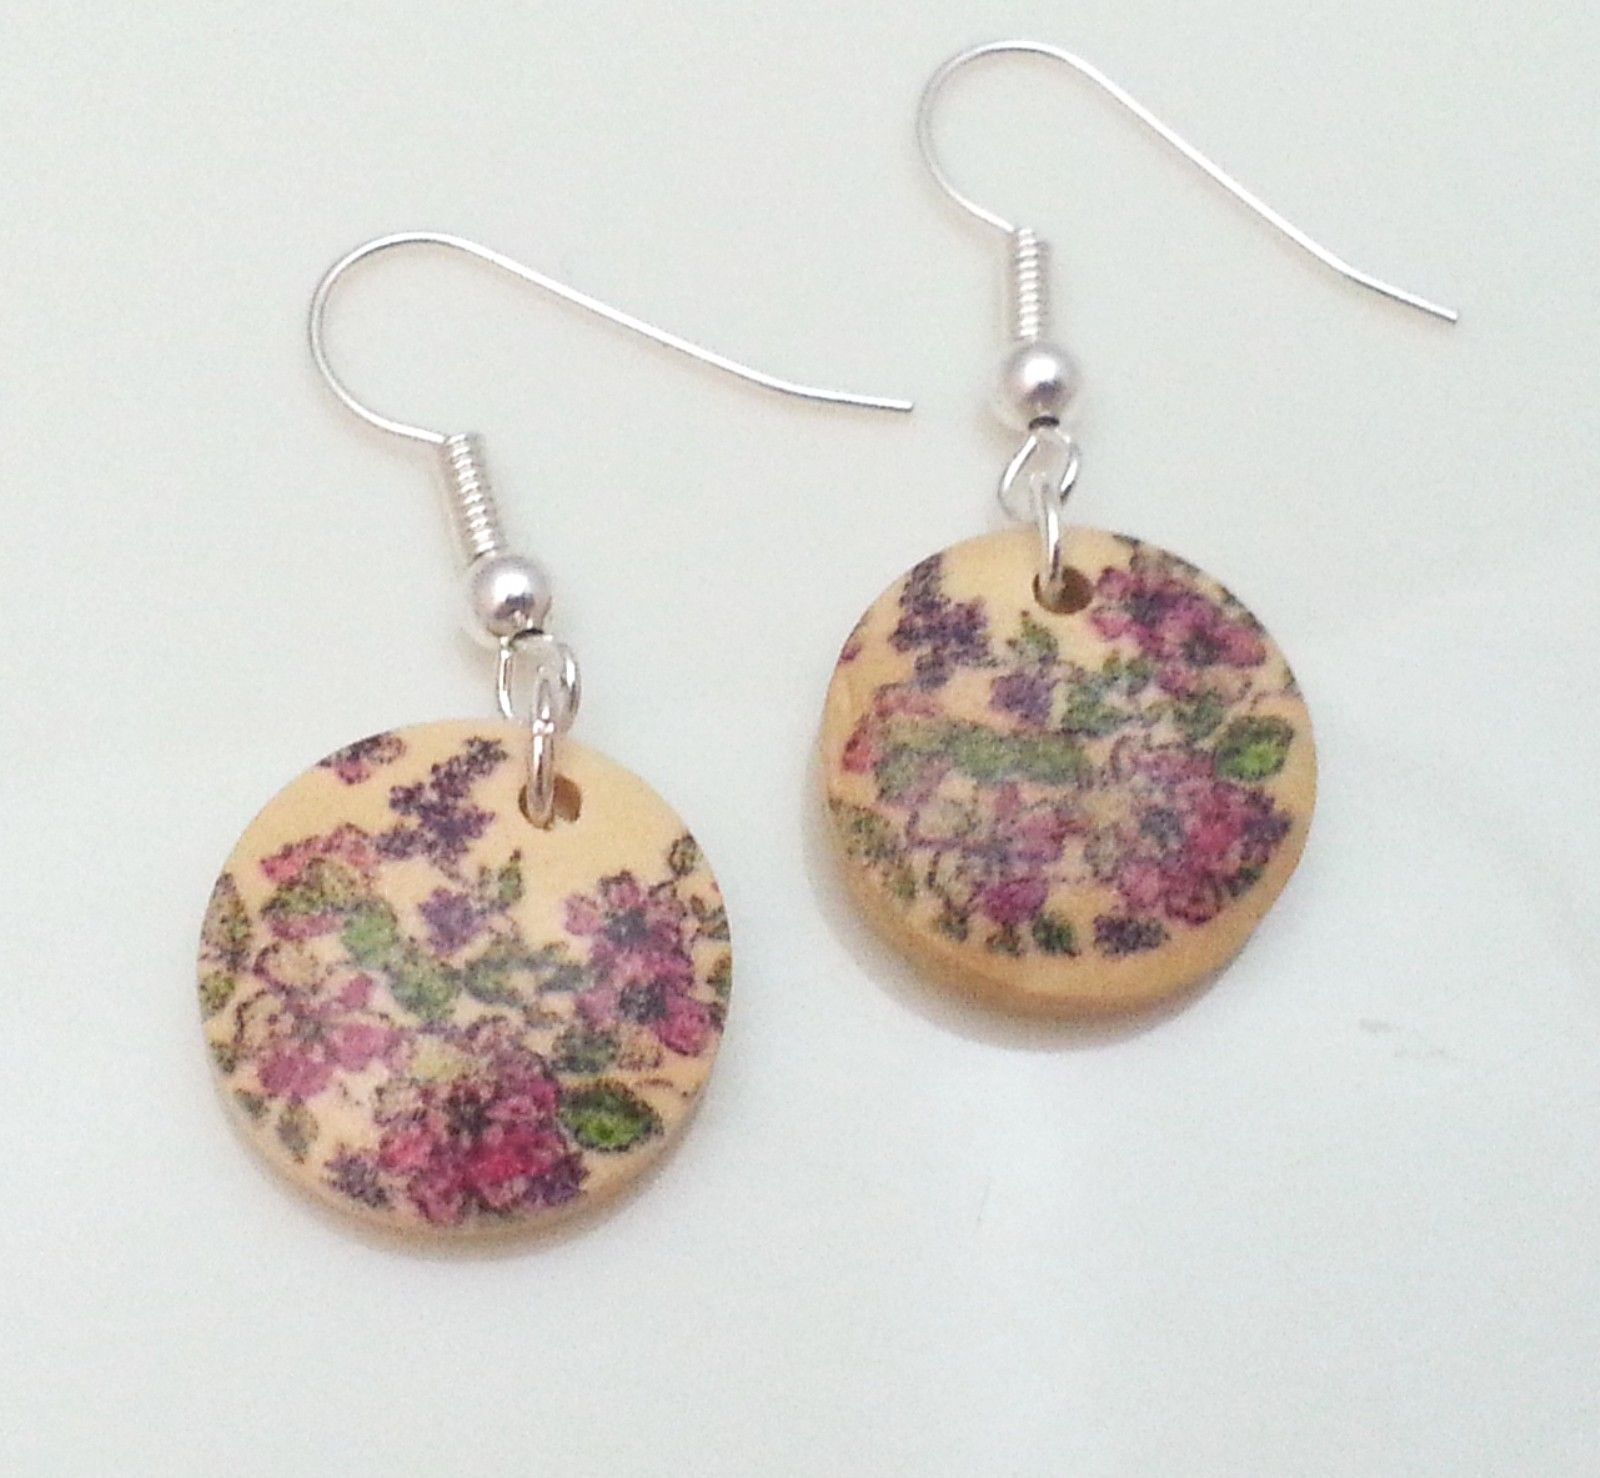 Light-Wooden-Jewellery-Earrings-Dangle-Disc-Round-Wood-Pink-Floral-Flowers-New-161361899000-2